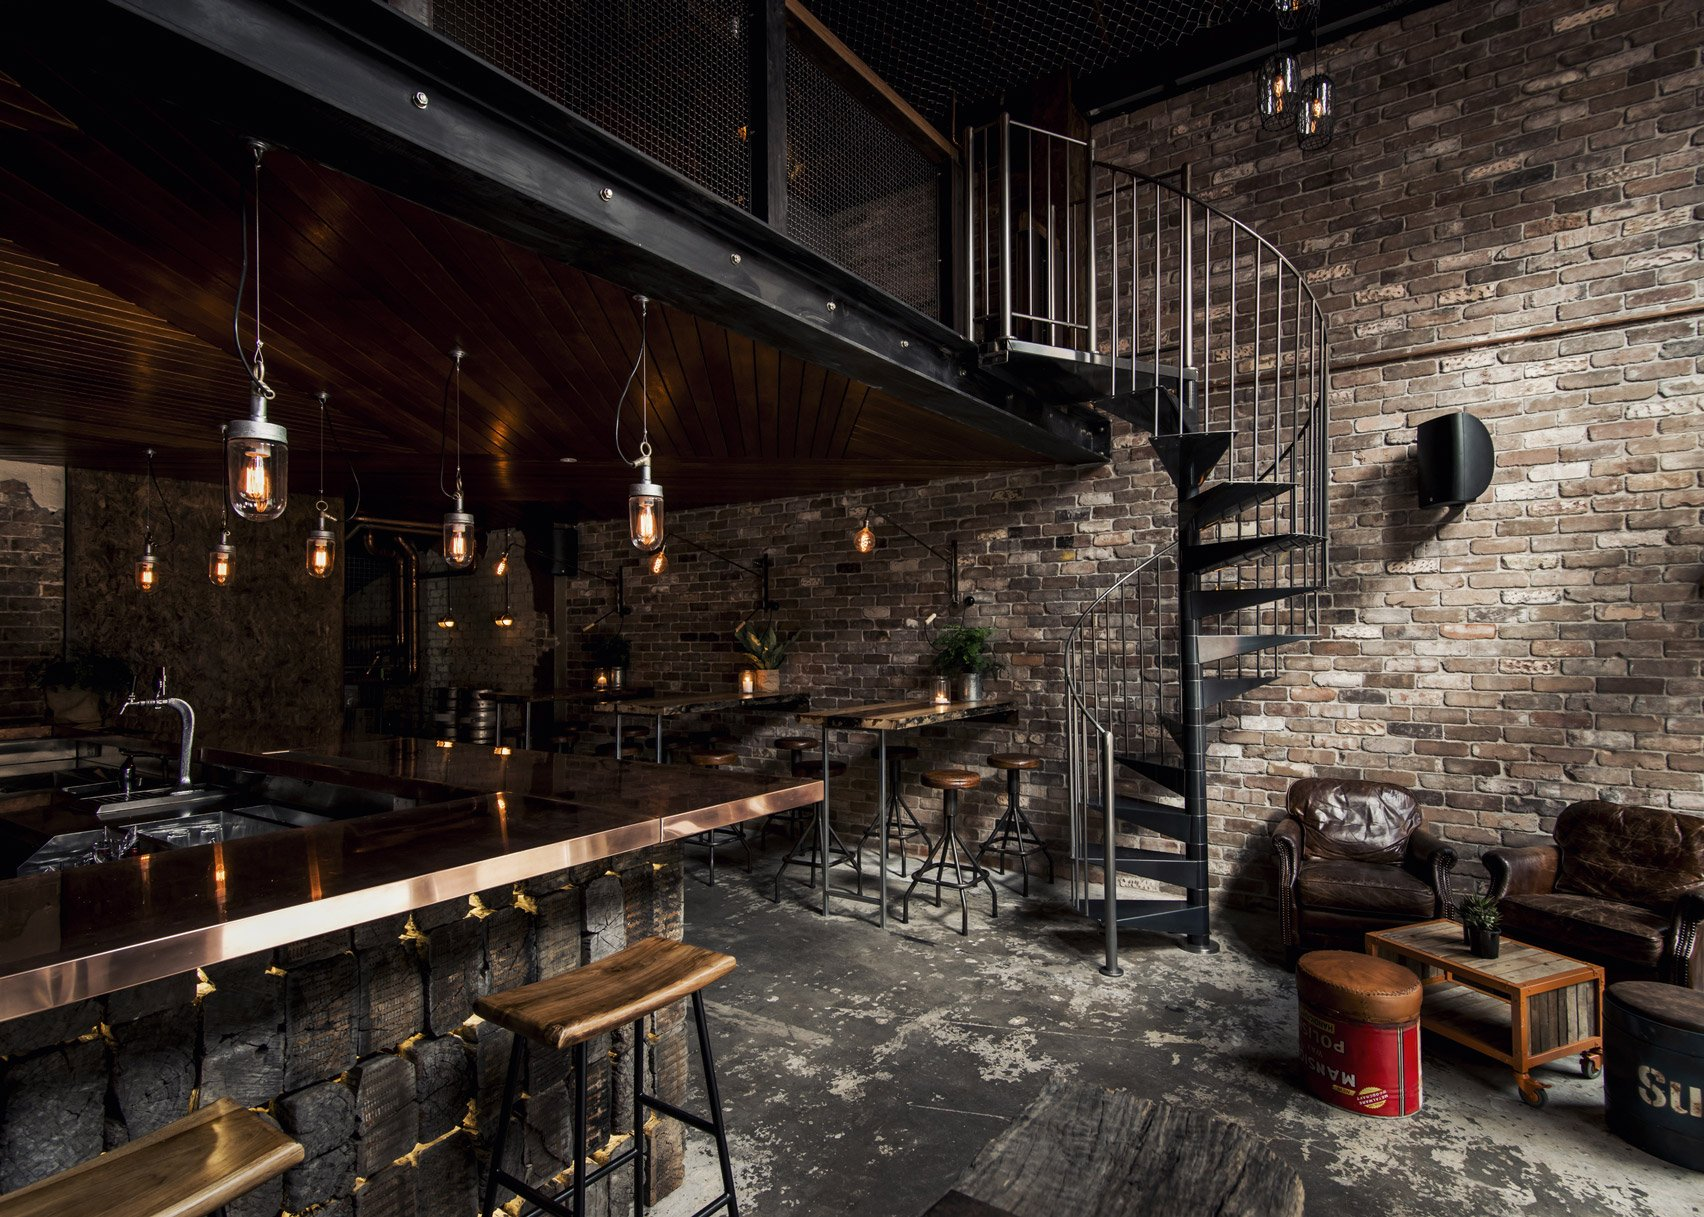 10 Of The Best Bar Interiors From Dezeenu0027s Pinterest Boards